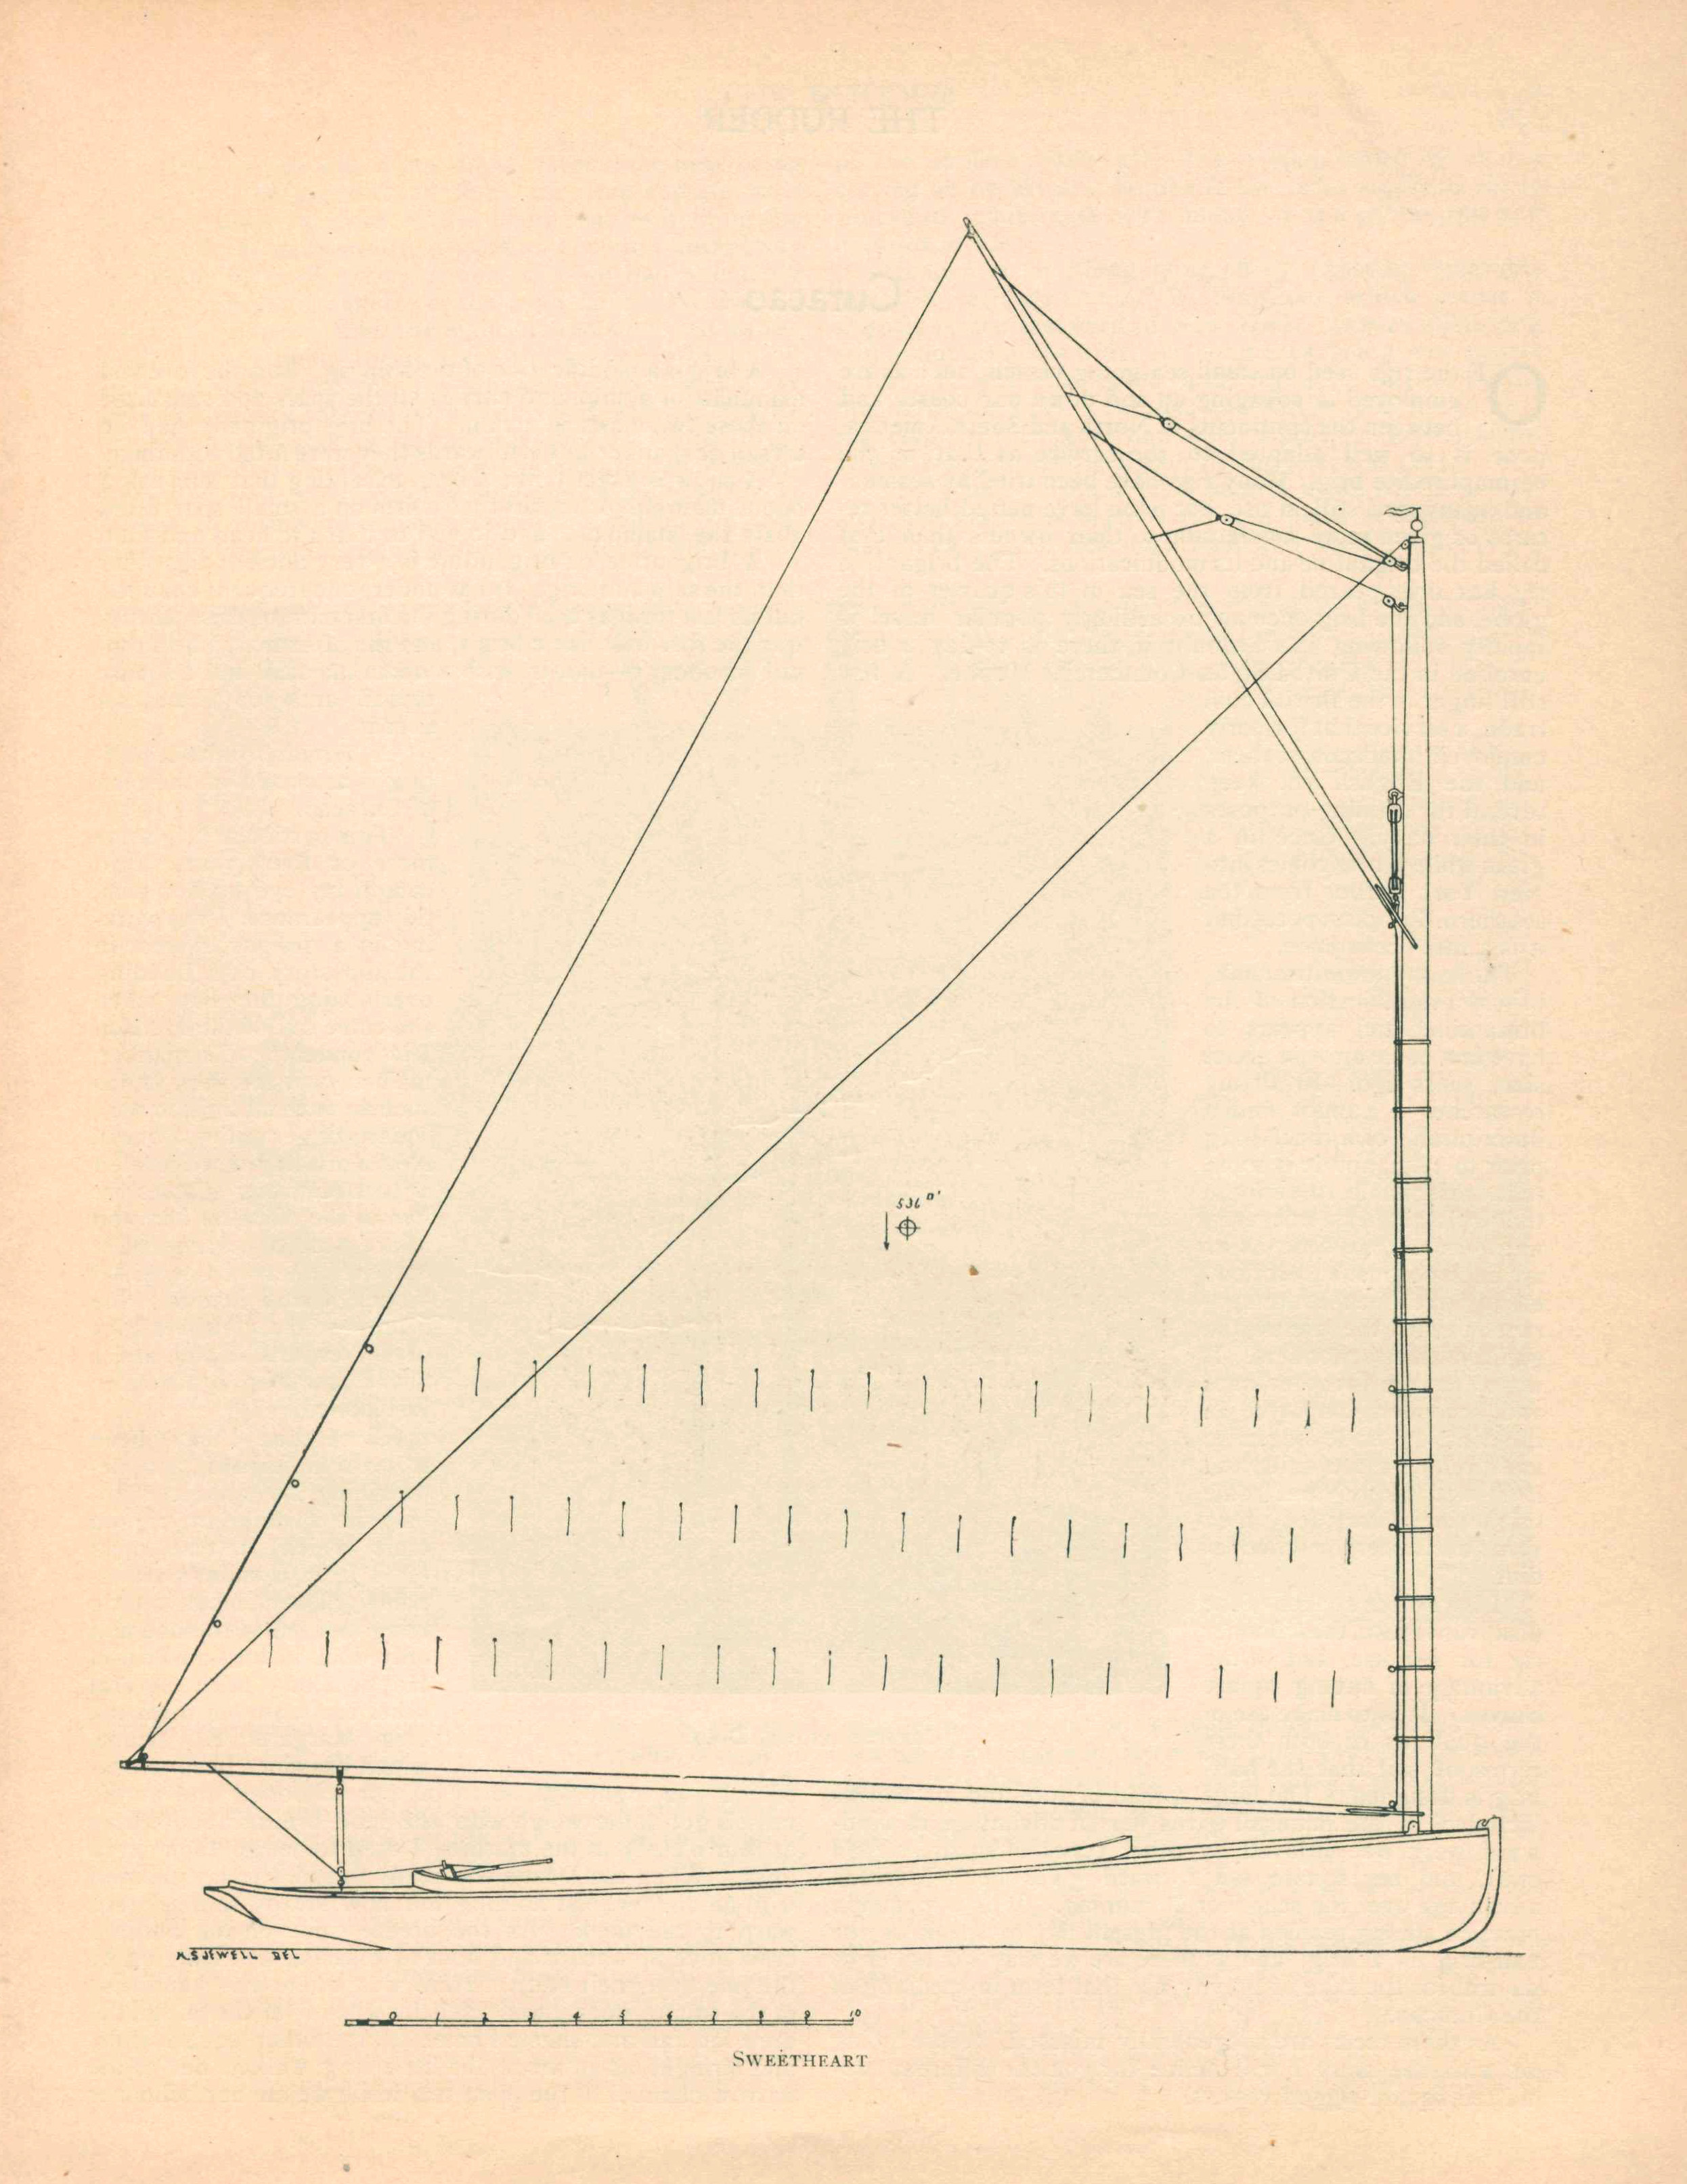 SAIL PLAN FOR GIL SMITH'S  SWEETHEART , FORMERLY  MARIAM